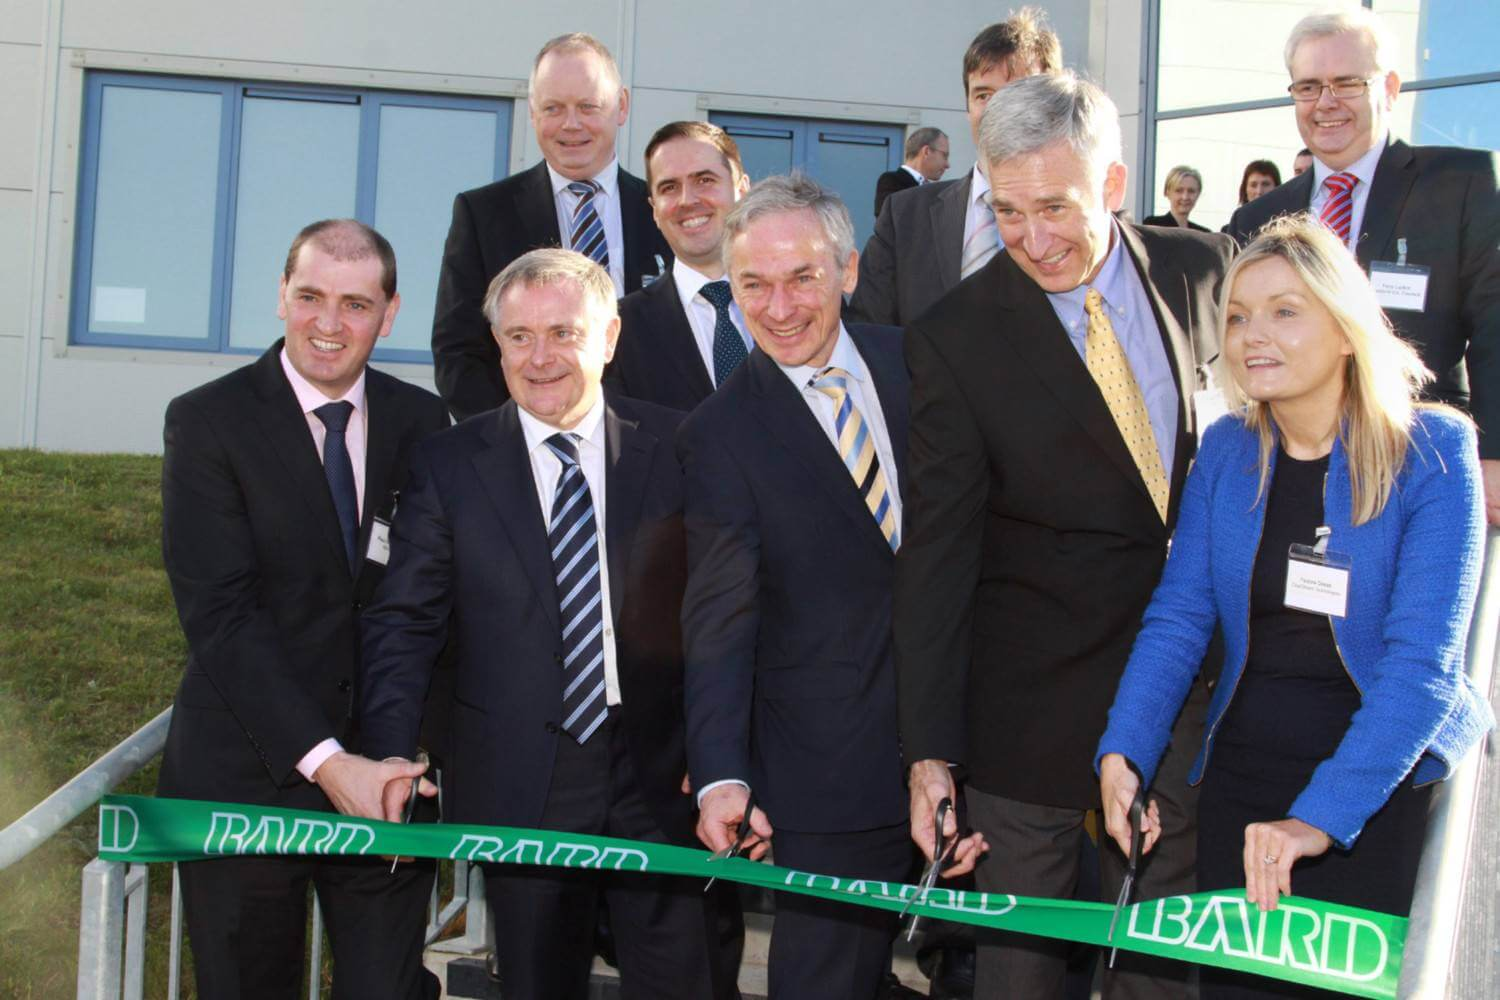 Paul Keogh, Brendan Howlin, Richard Bruton and employees of BARD, Clearstream and the IDA cutting green ribbon to mark opening of new cleanroom extension.